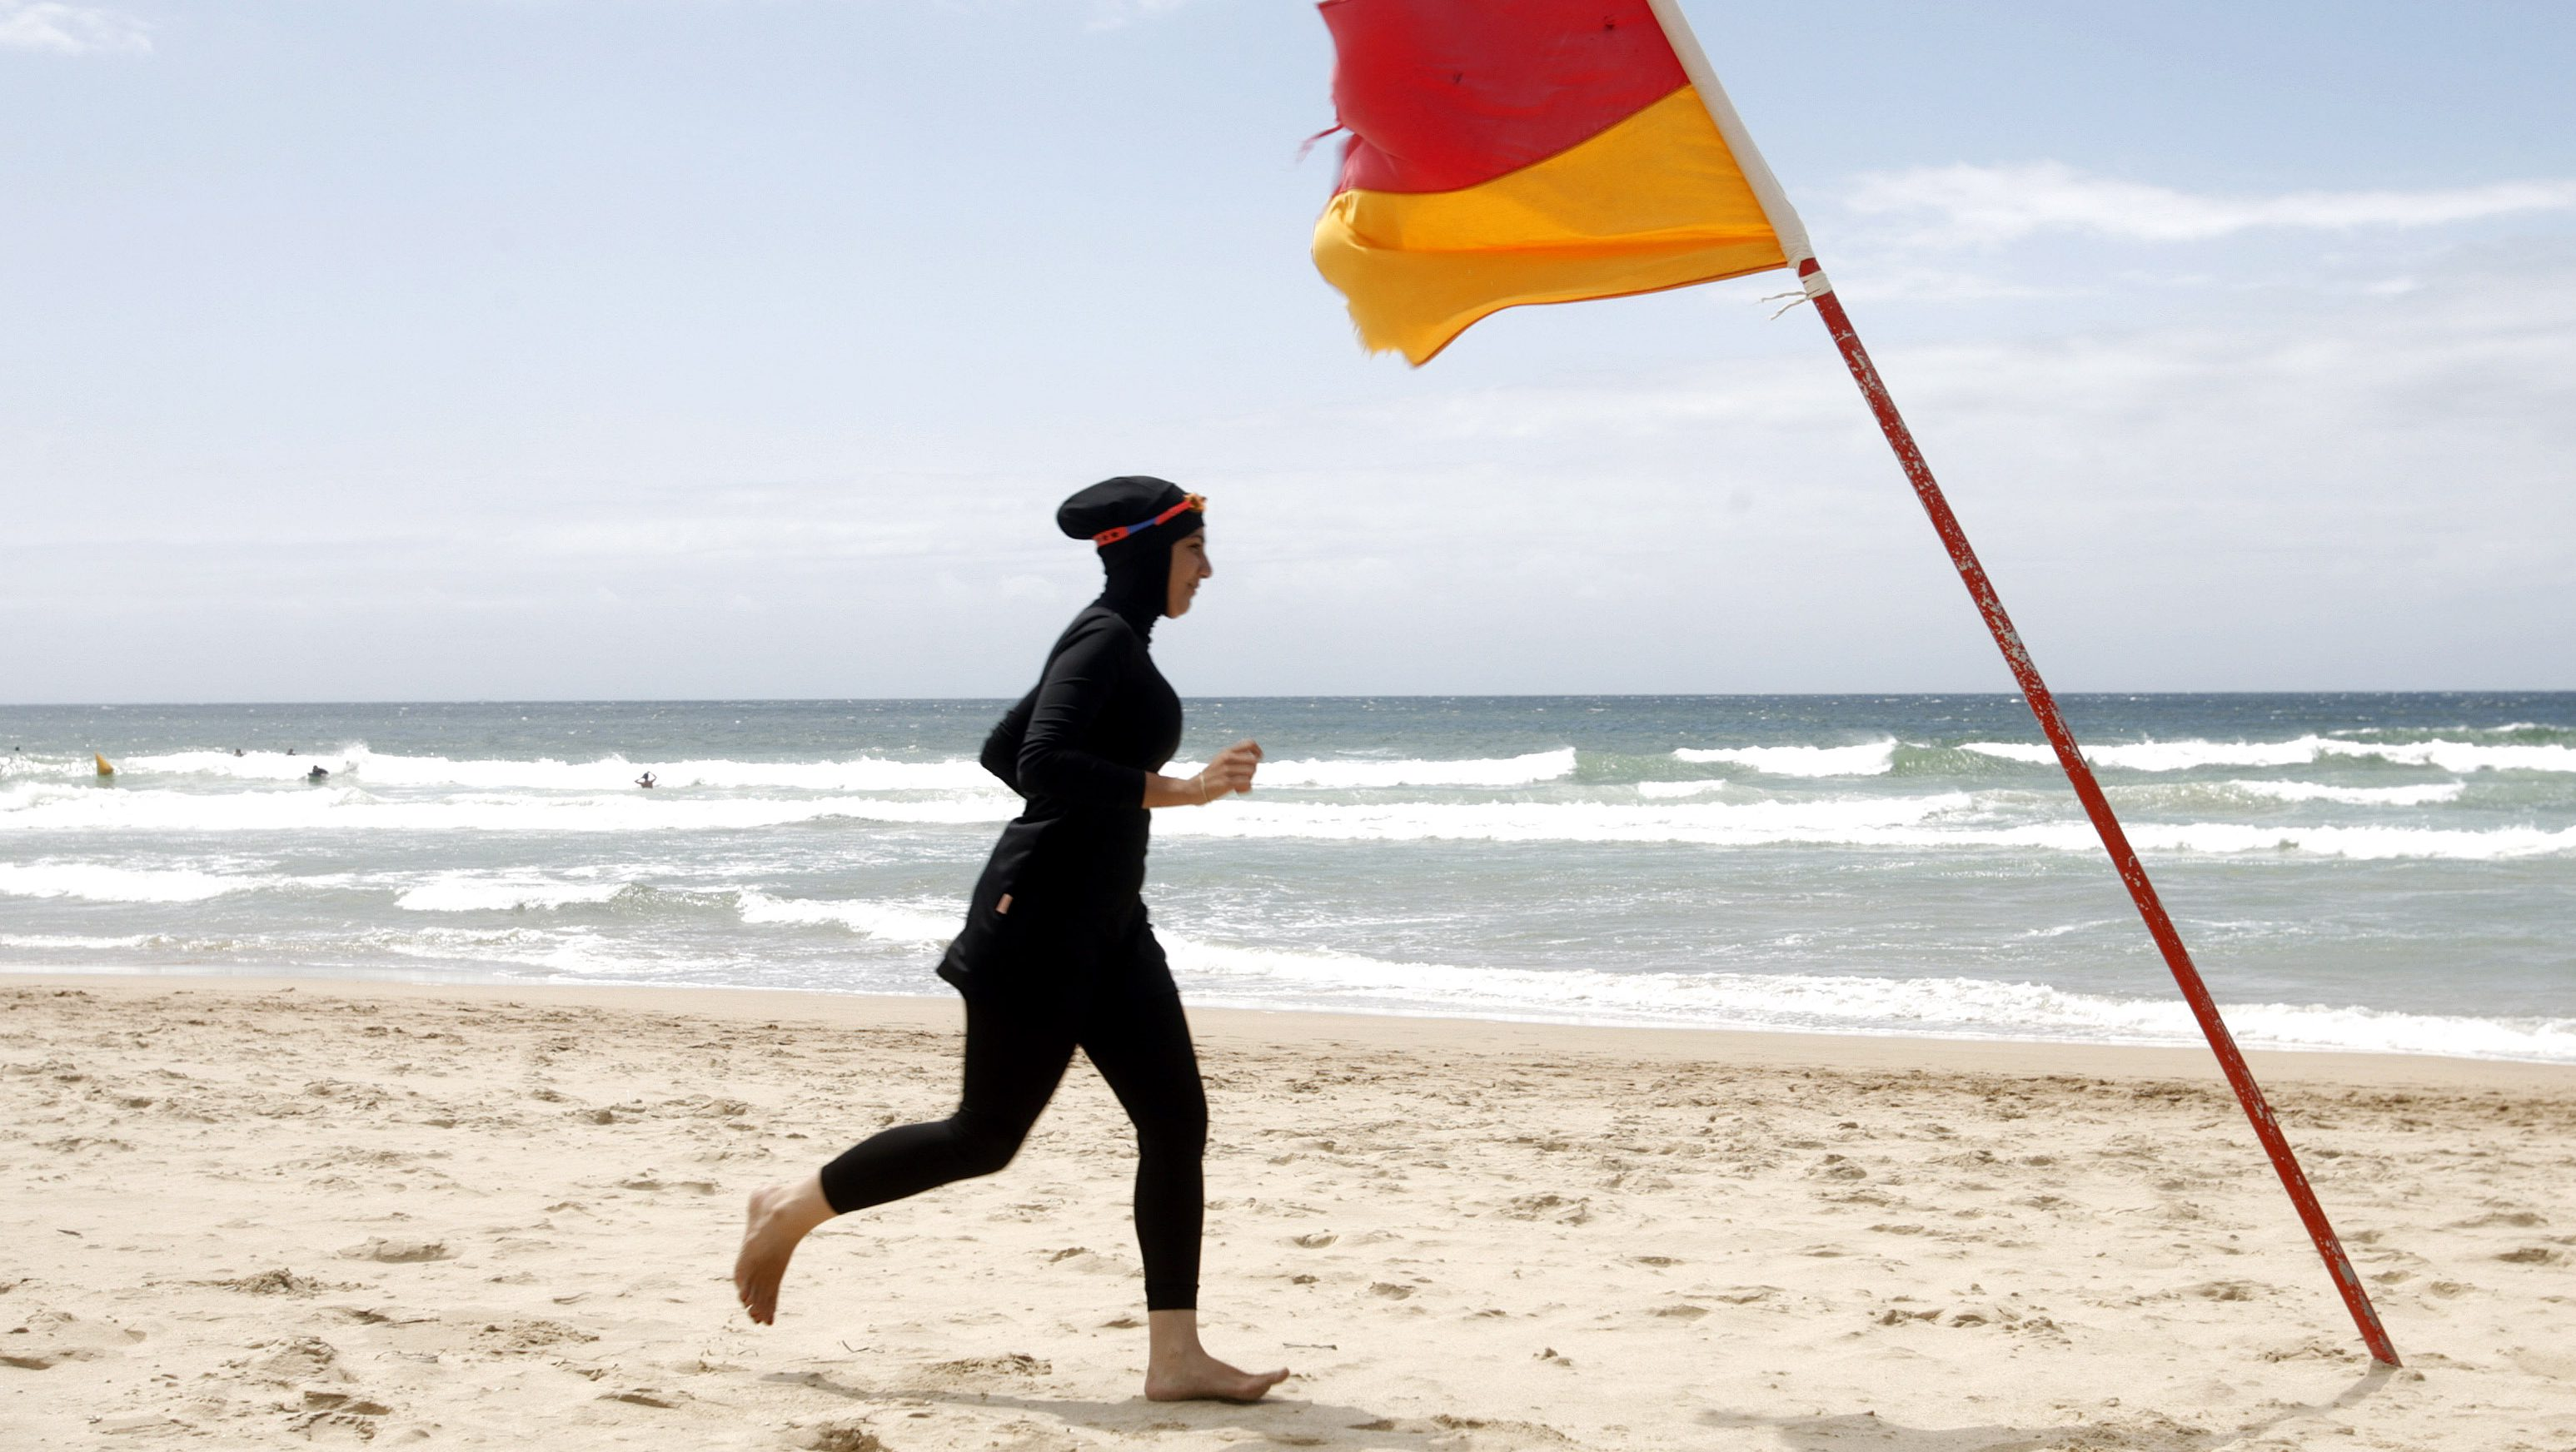 """Twenty-year-old trainee volunteer surf life saver Mecca Laalaa runs along North Cronulla Beach in Sydney during her Bronze medallion competency test January 13, 2007. Specifically designed for Muslim women, Laalaa's body-covering swimming costume has been named the """"burkini"""" by its Sydney based designer Aheda Zanetti.   REUTERS/Tim Wimborne (AUSTRALIA) - RTR1L4WG"""